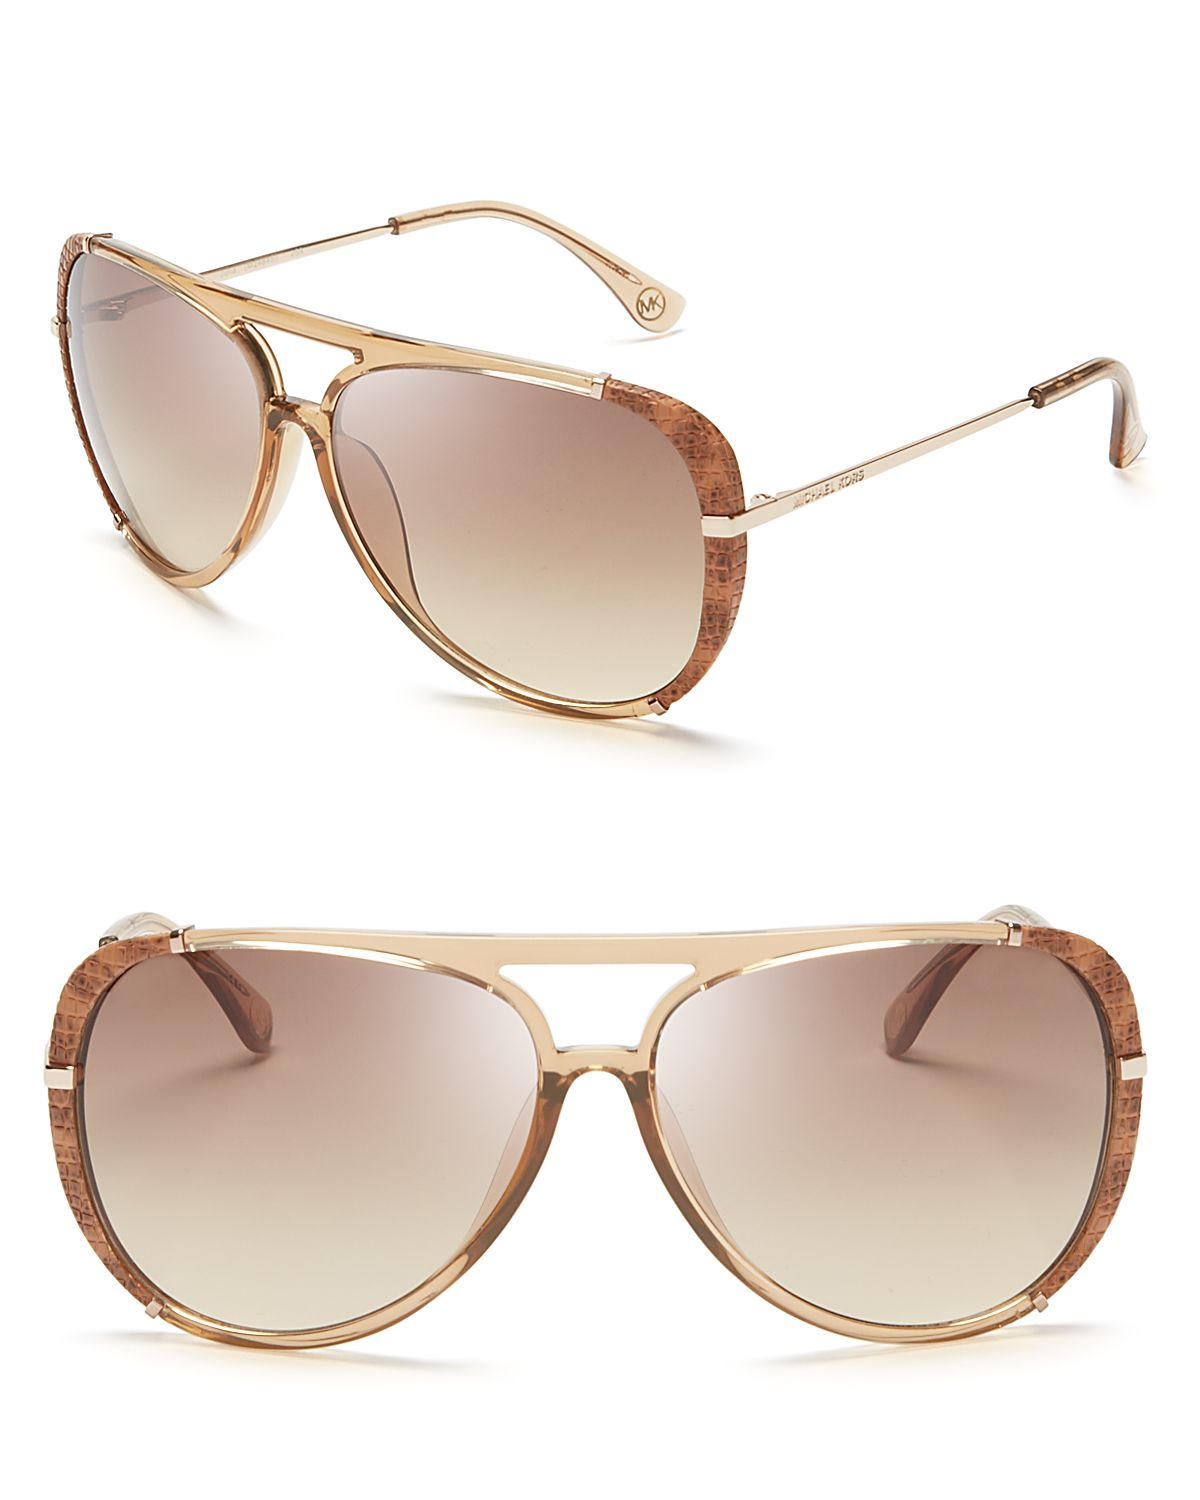 4eada07d7f7a Michael Kors Julia Aviator Sunglasses in Natural - Lyst